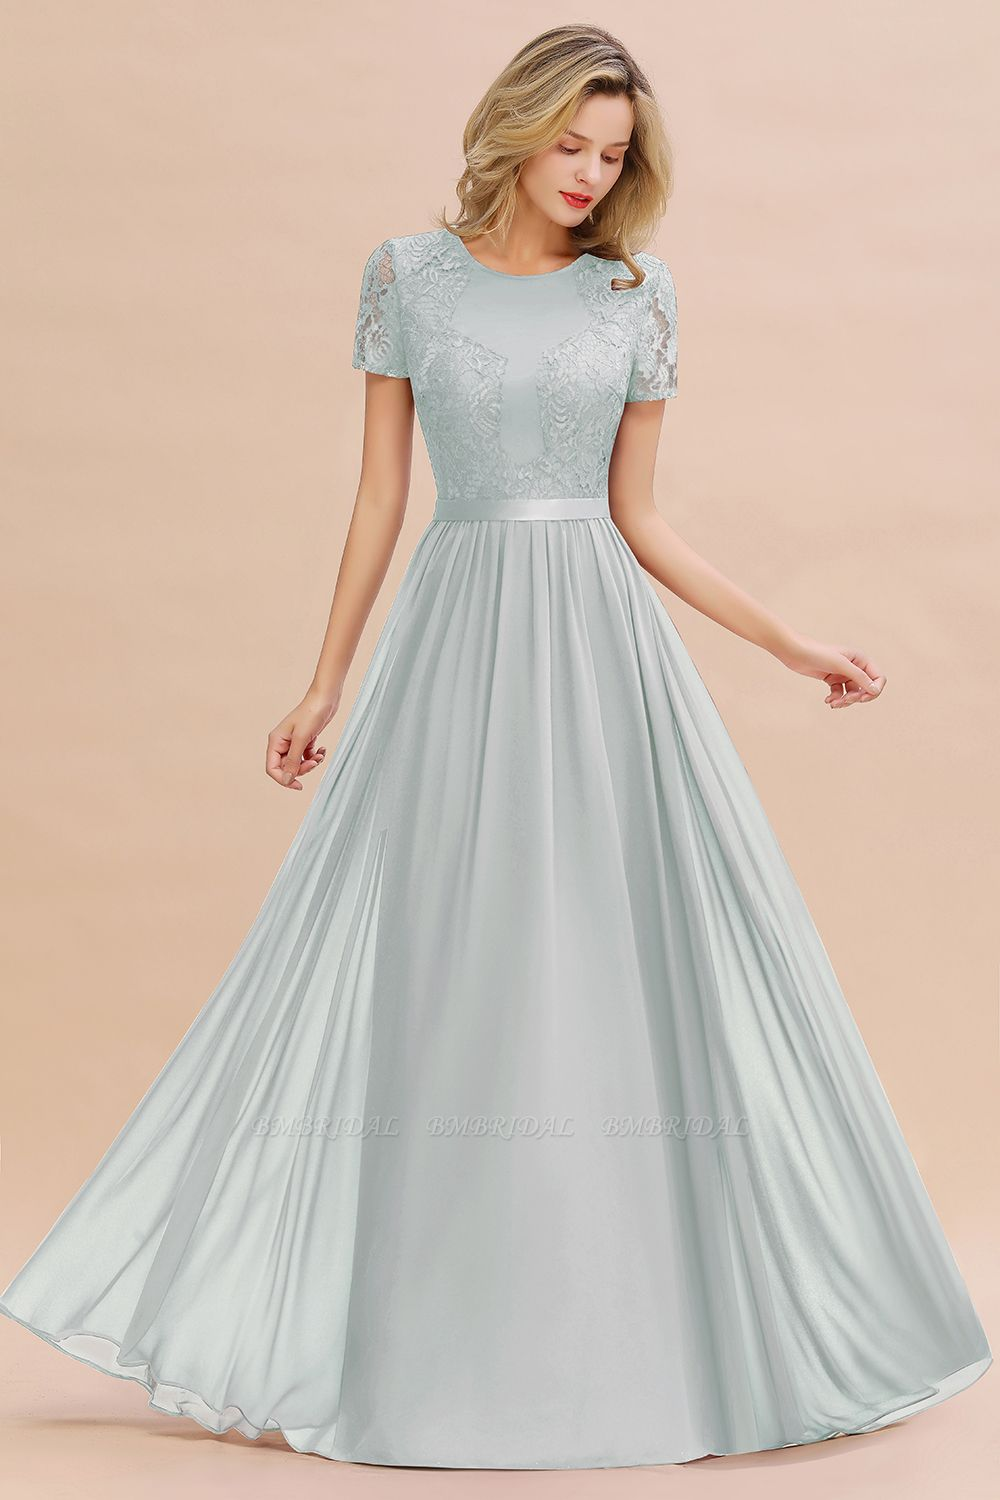 Elegant Chiffon Lace Jewel Short-Sleeves Affordable Bridesmaid Dress